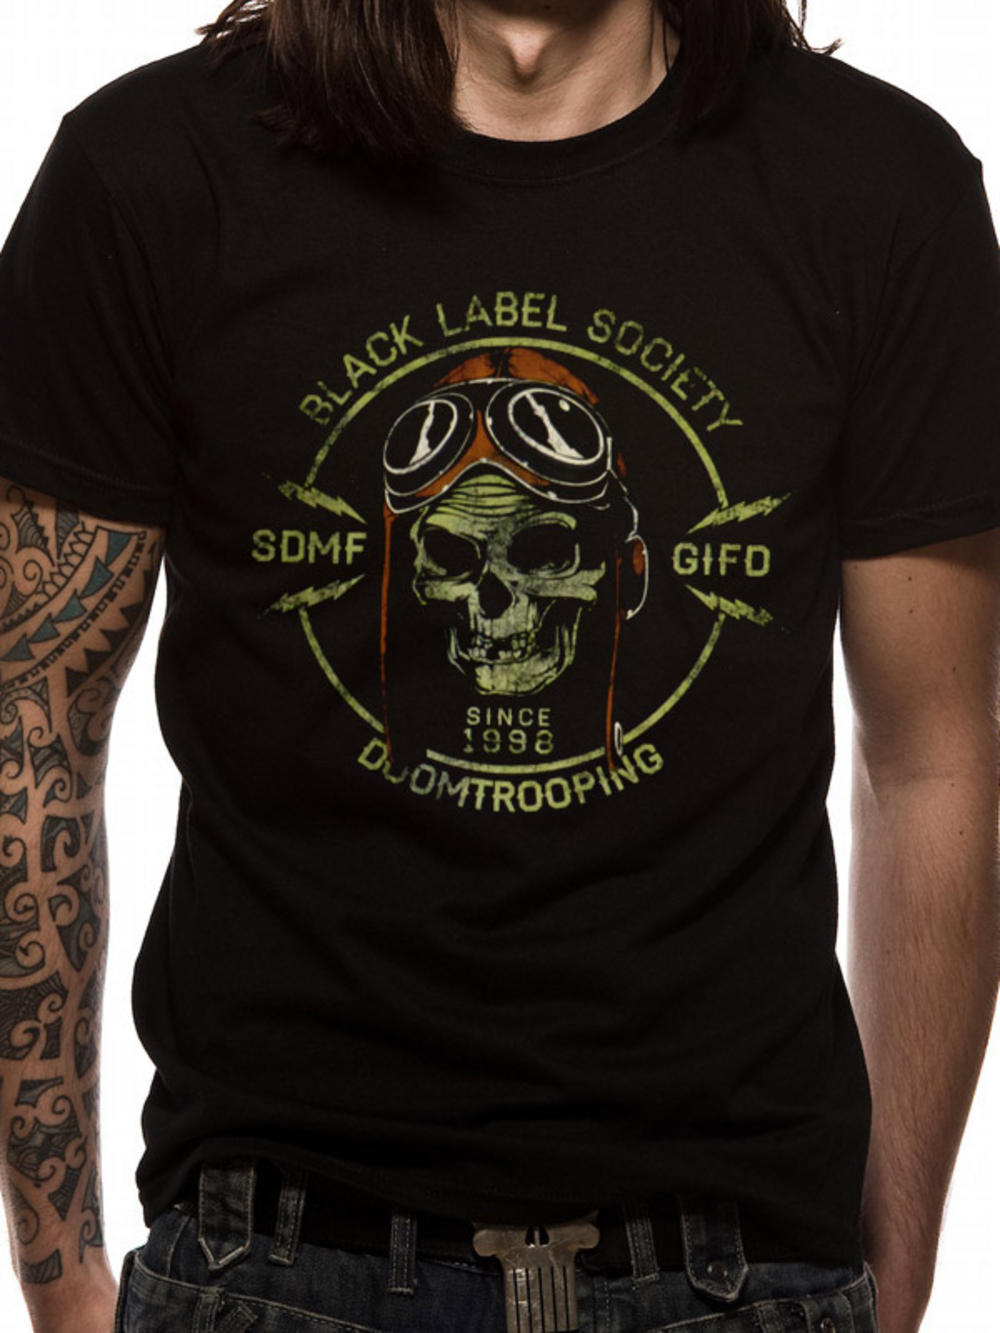 Where To Buy Black Label Society Shirts 10